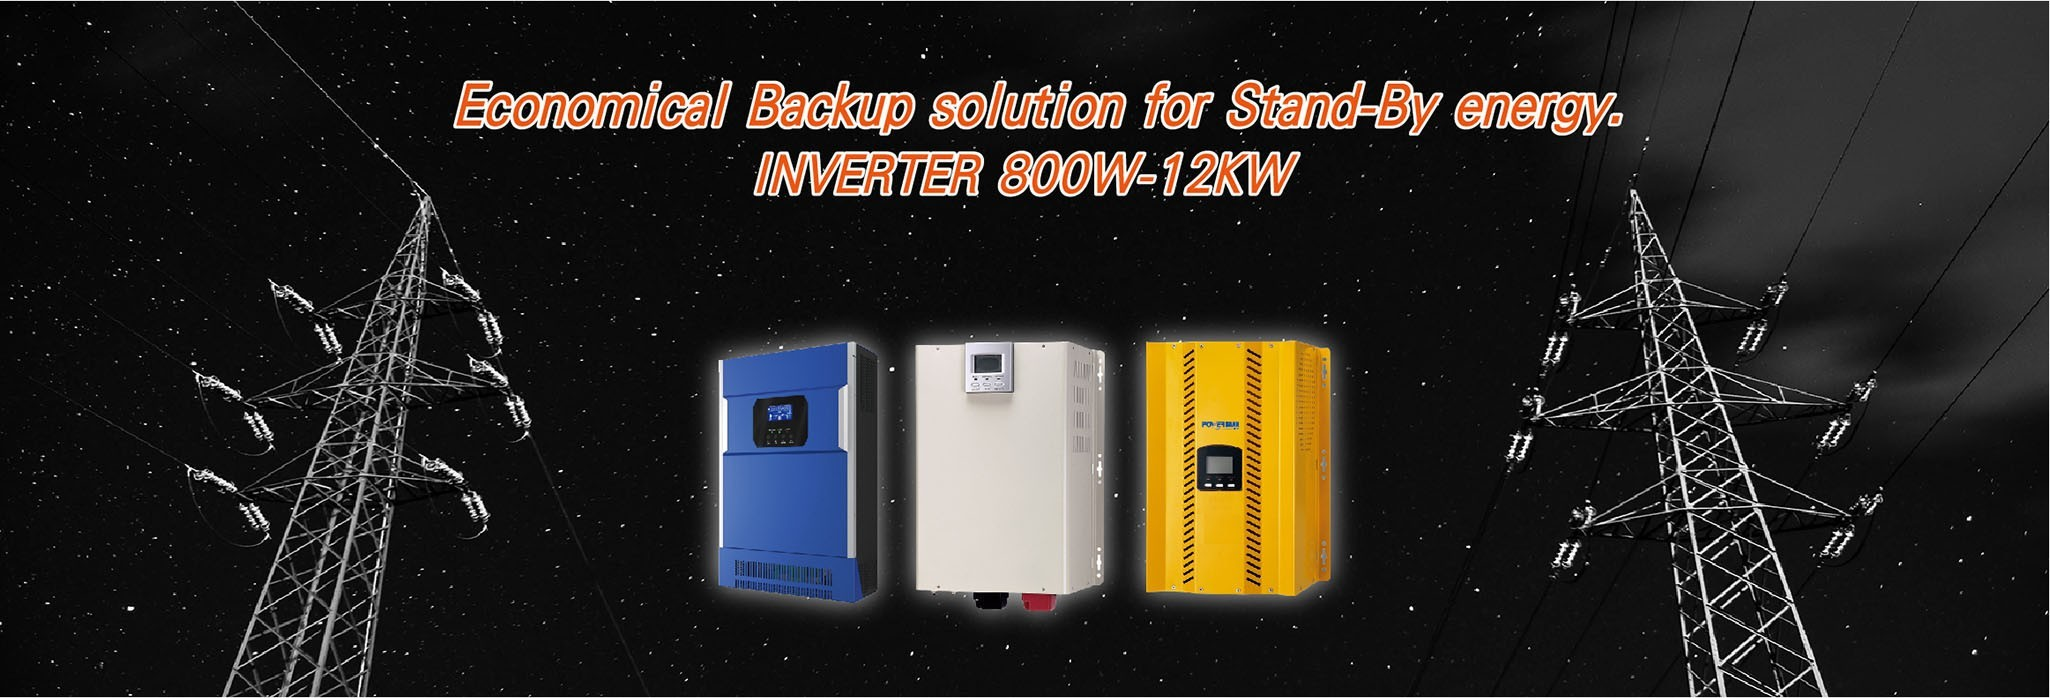 Economical Backup solution for Stand-By energy